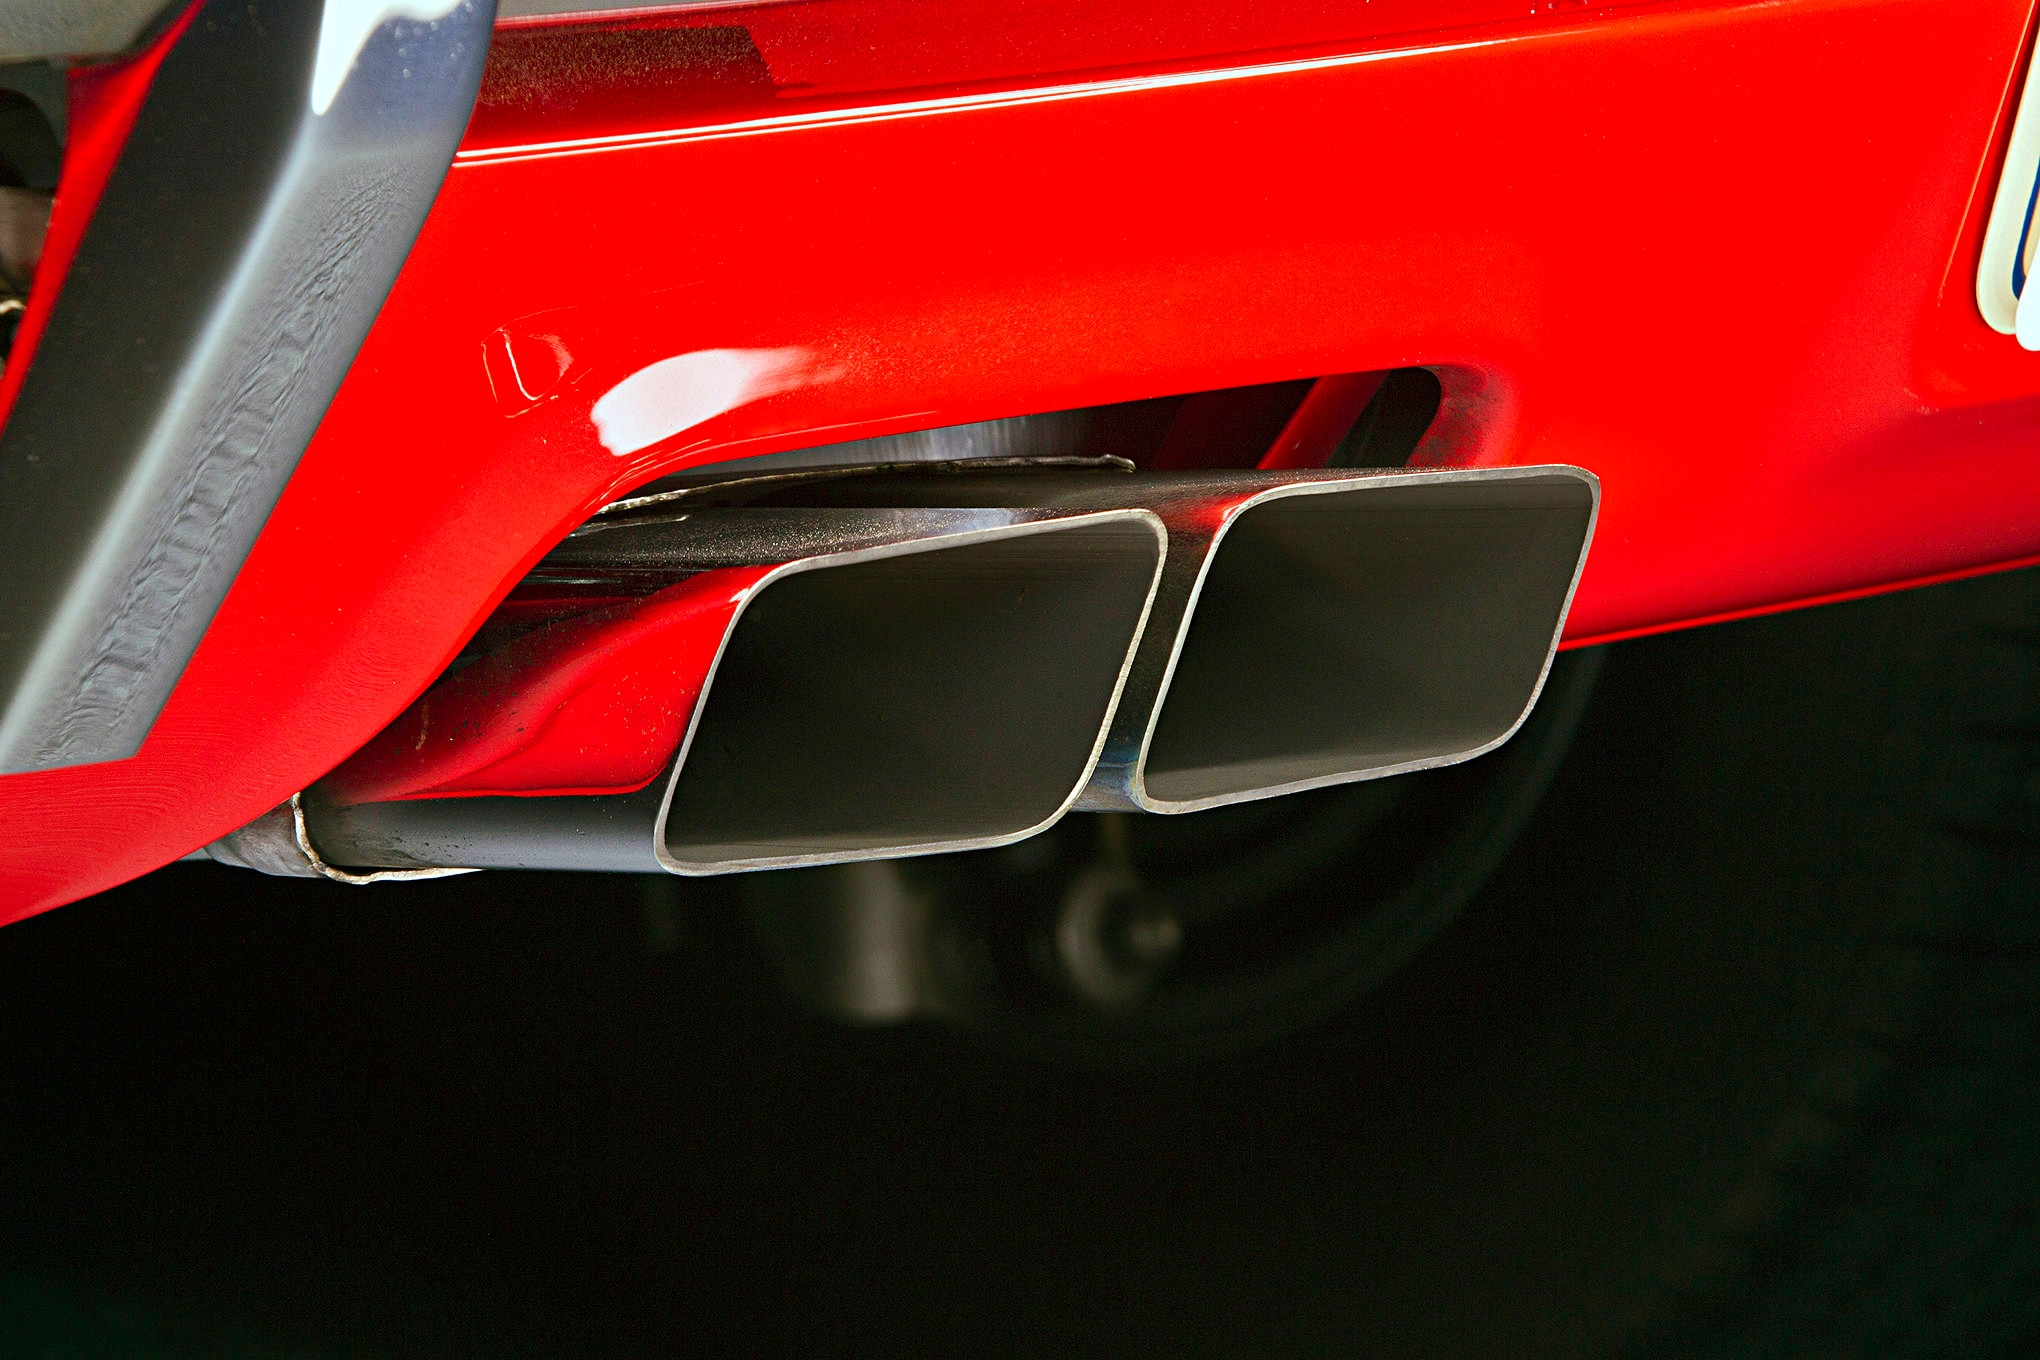 1970-dodge-challenger-tailpipe-exhaust-tips-closeup